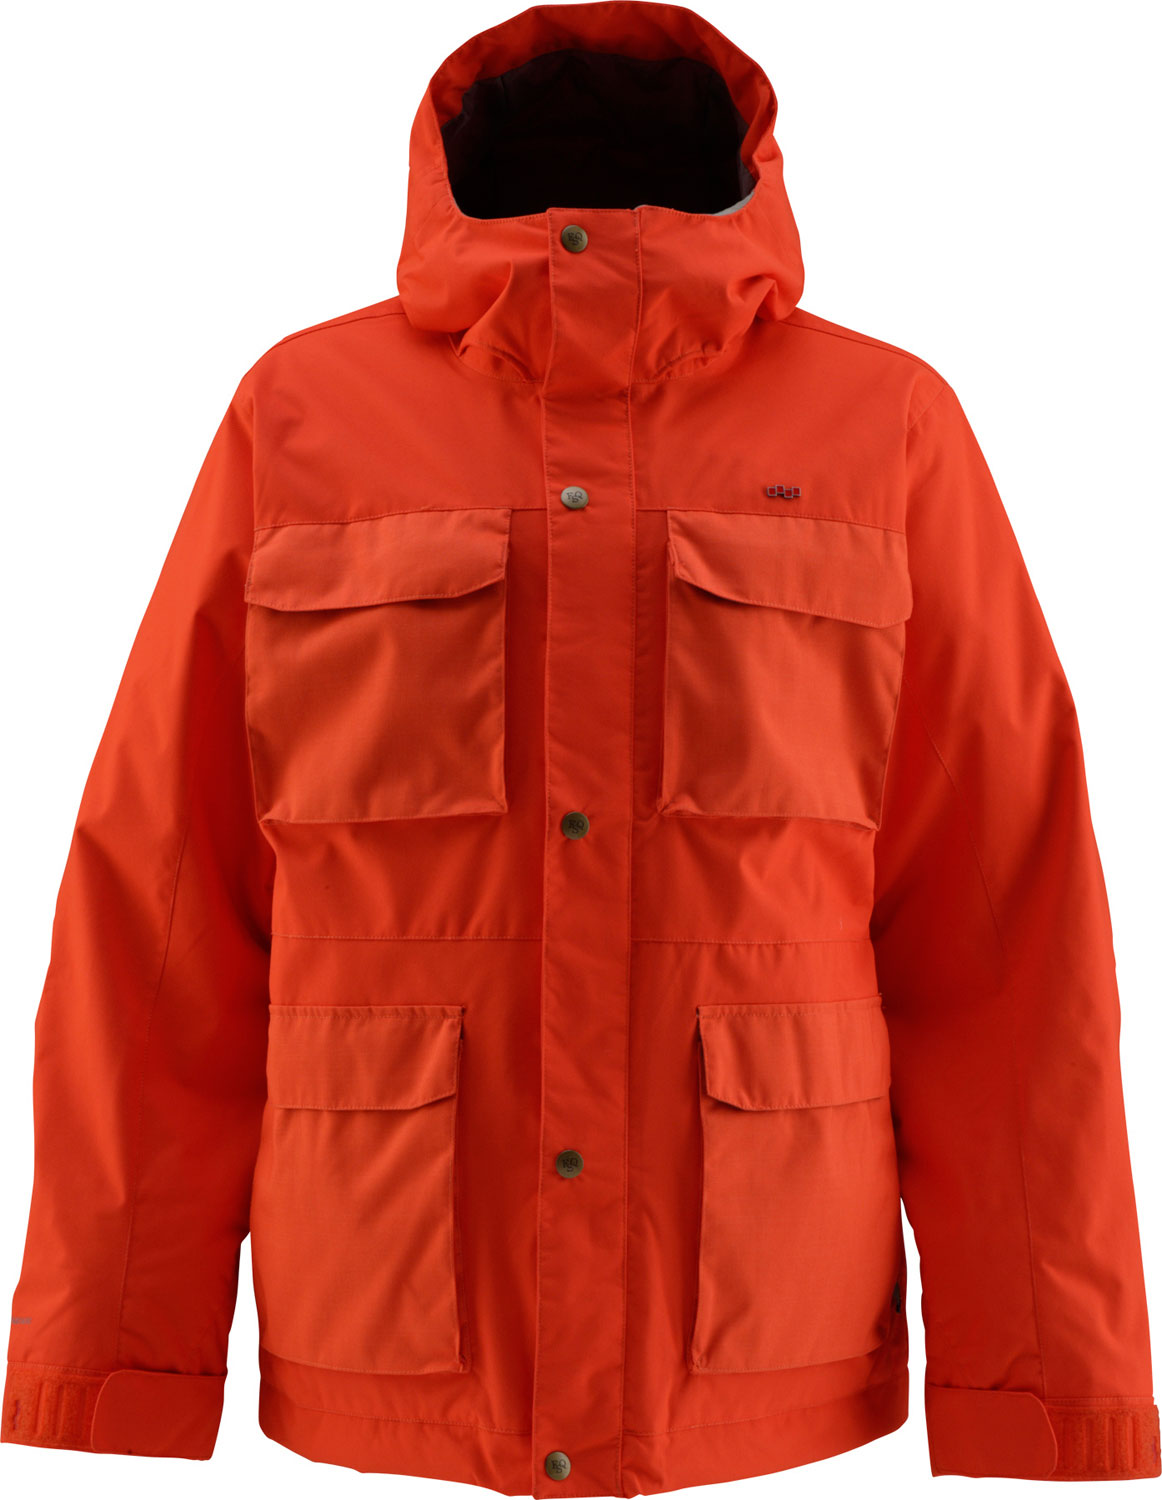 Snowboard Key Features of the Foursquare PJ Snowboard Jacket: 10,000mm Waterproof 10,000g Breathability Series: Insulated Material: 2L MicroShield Nylon Dobby fabric 60gm polyester insulation Critically taped seams Fulltime Hood Fulltime Powderskirt Stretch wrist warmers - $85.95